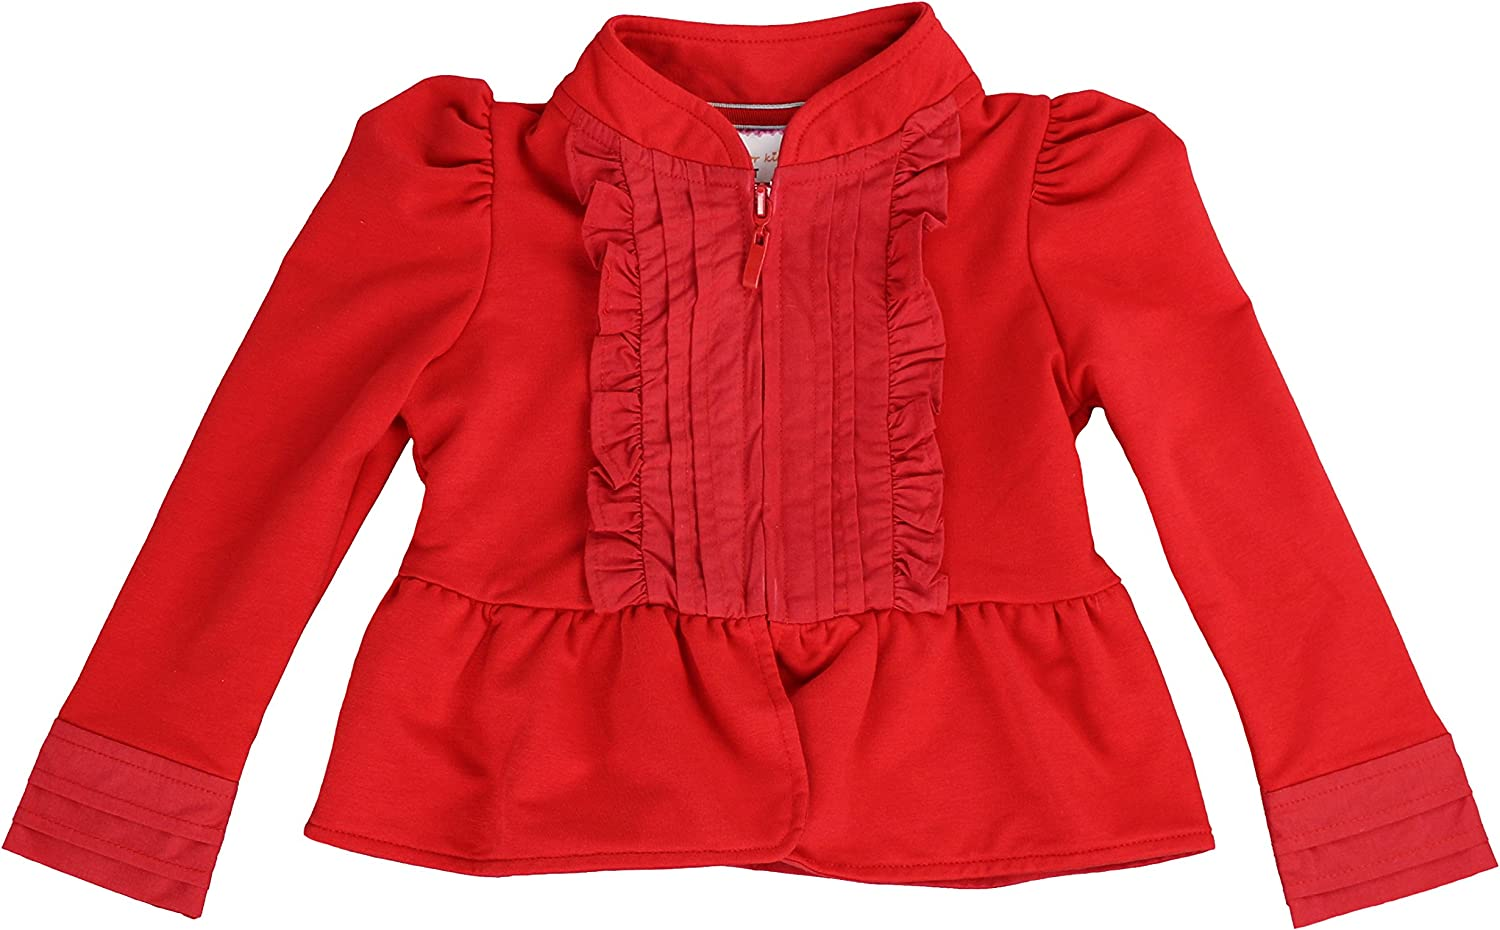 LELEFORKIDS- Toddlers Ultra-Cheap Deals and Girls 2-7 French Knit Terry Kiss Max 52% OFF 8